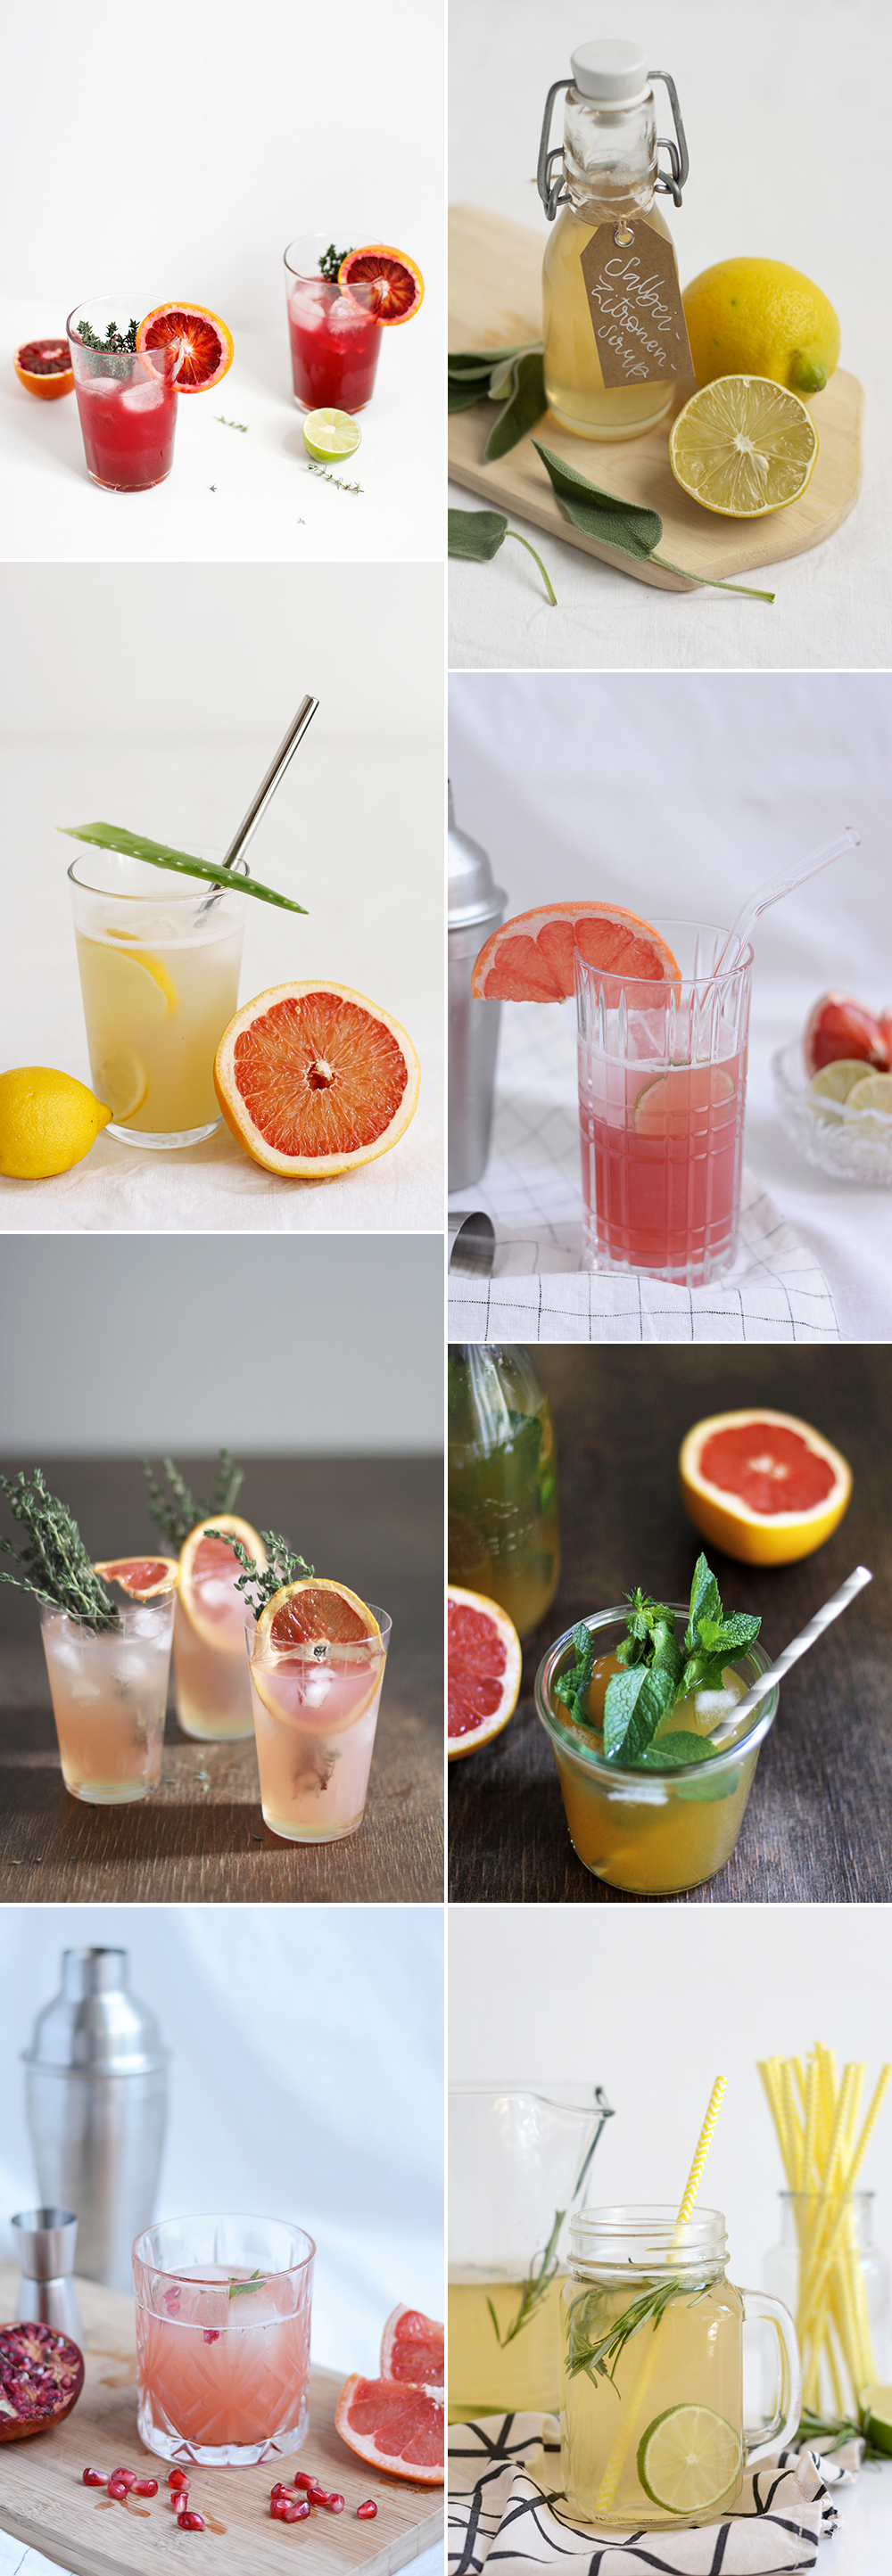 we love Inspiration: Unsere liebsten Drinks mit Zitrusfrüchten | we love handmade